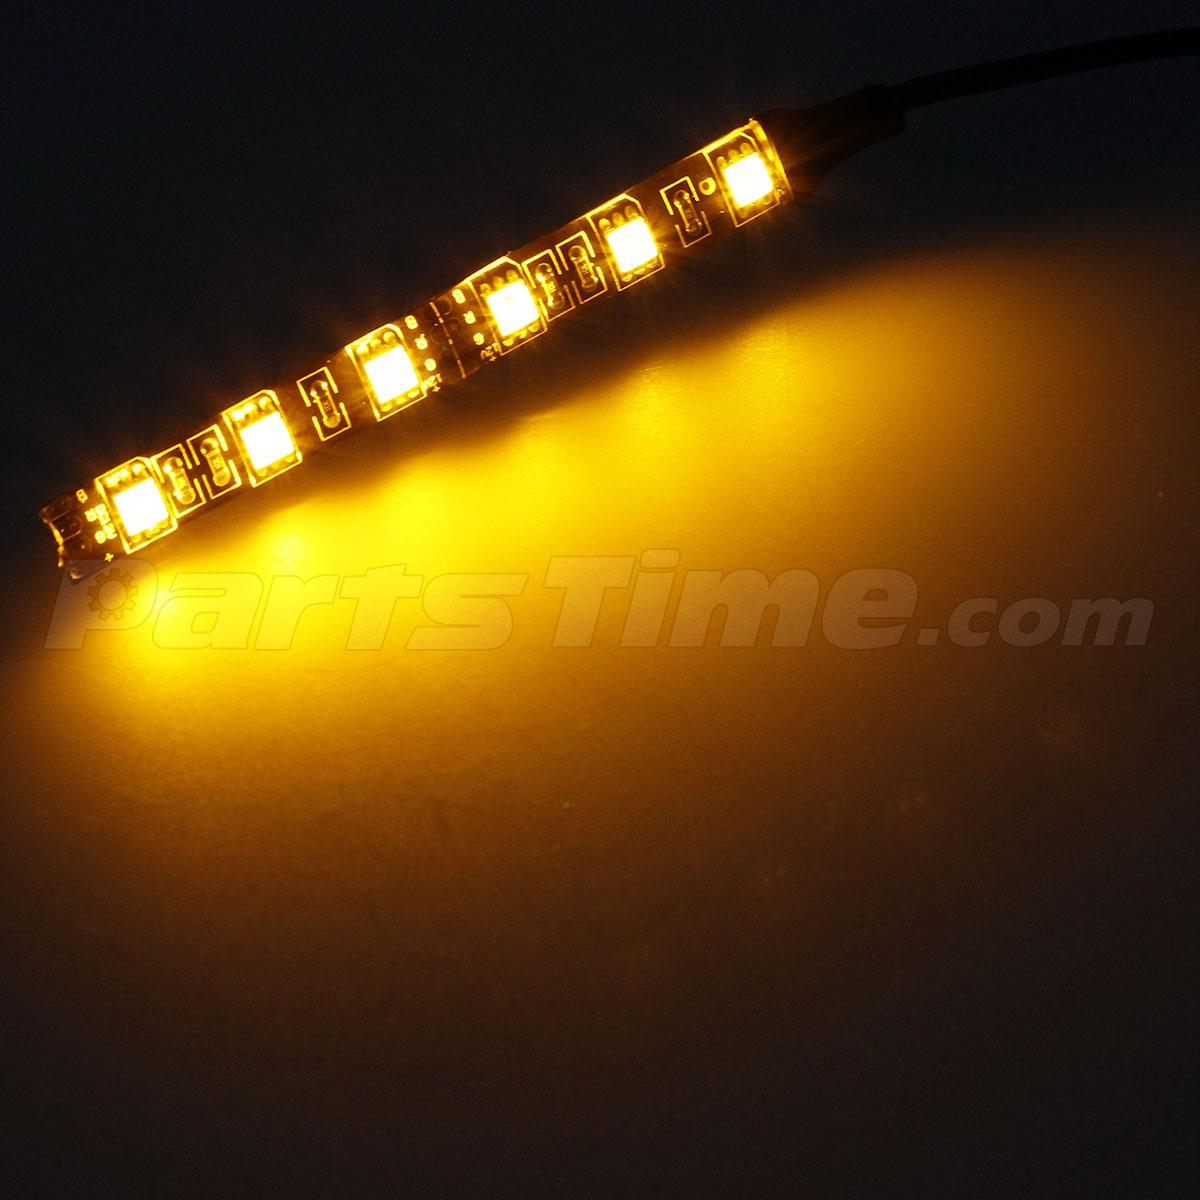 2x 12v 5050 smd amber led strip lights for motorcycle under glow accent lighting ebay. Black Bedroom Furniture Sets. Home Design Ideas